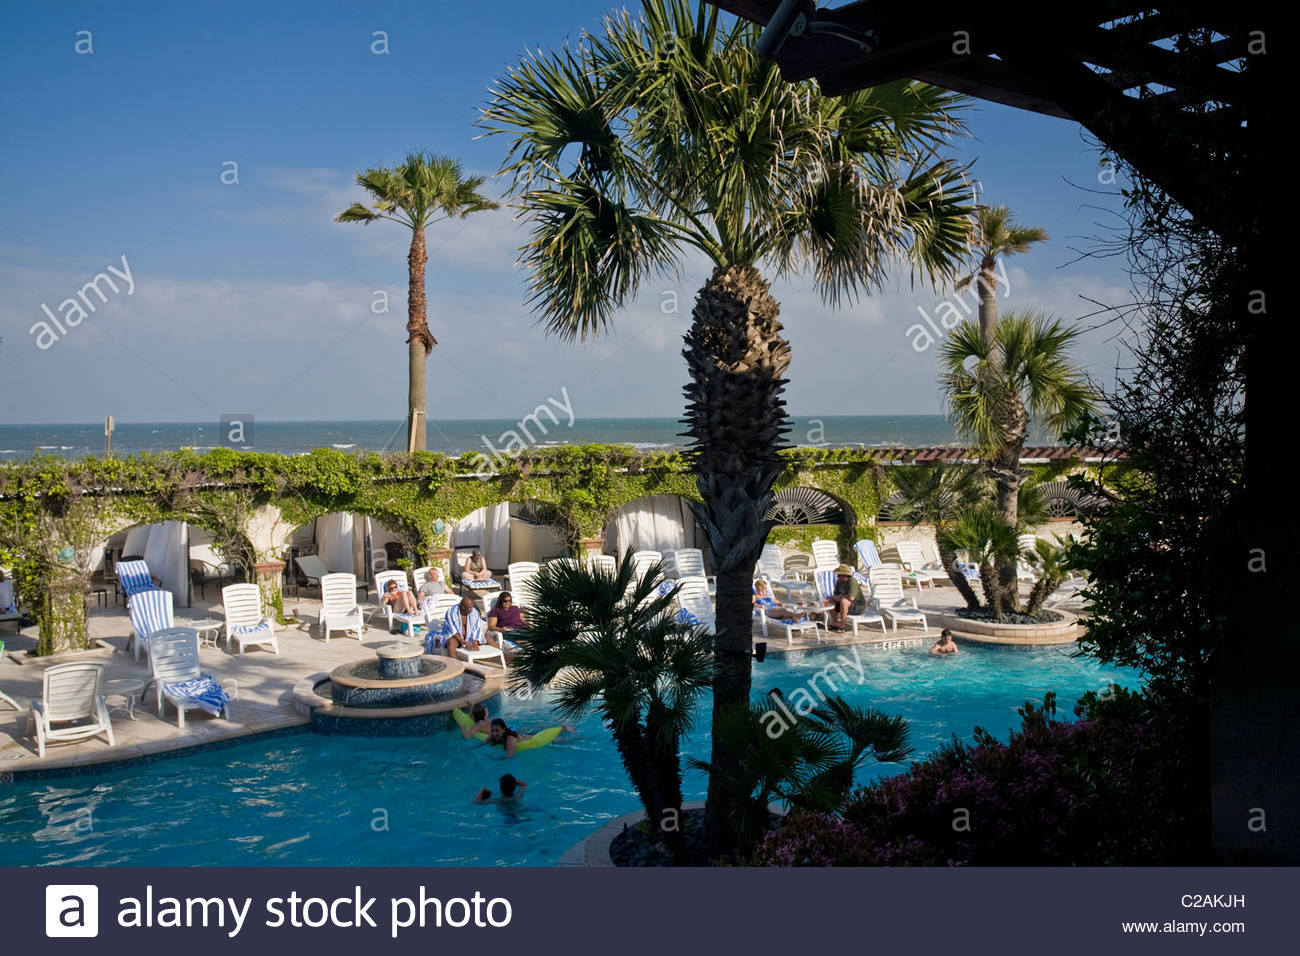 A view of the pool at historic Hotel Galvez from an enclosed veranda. - Stock Image